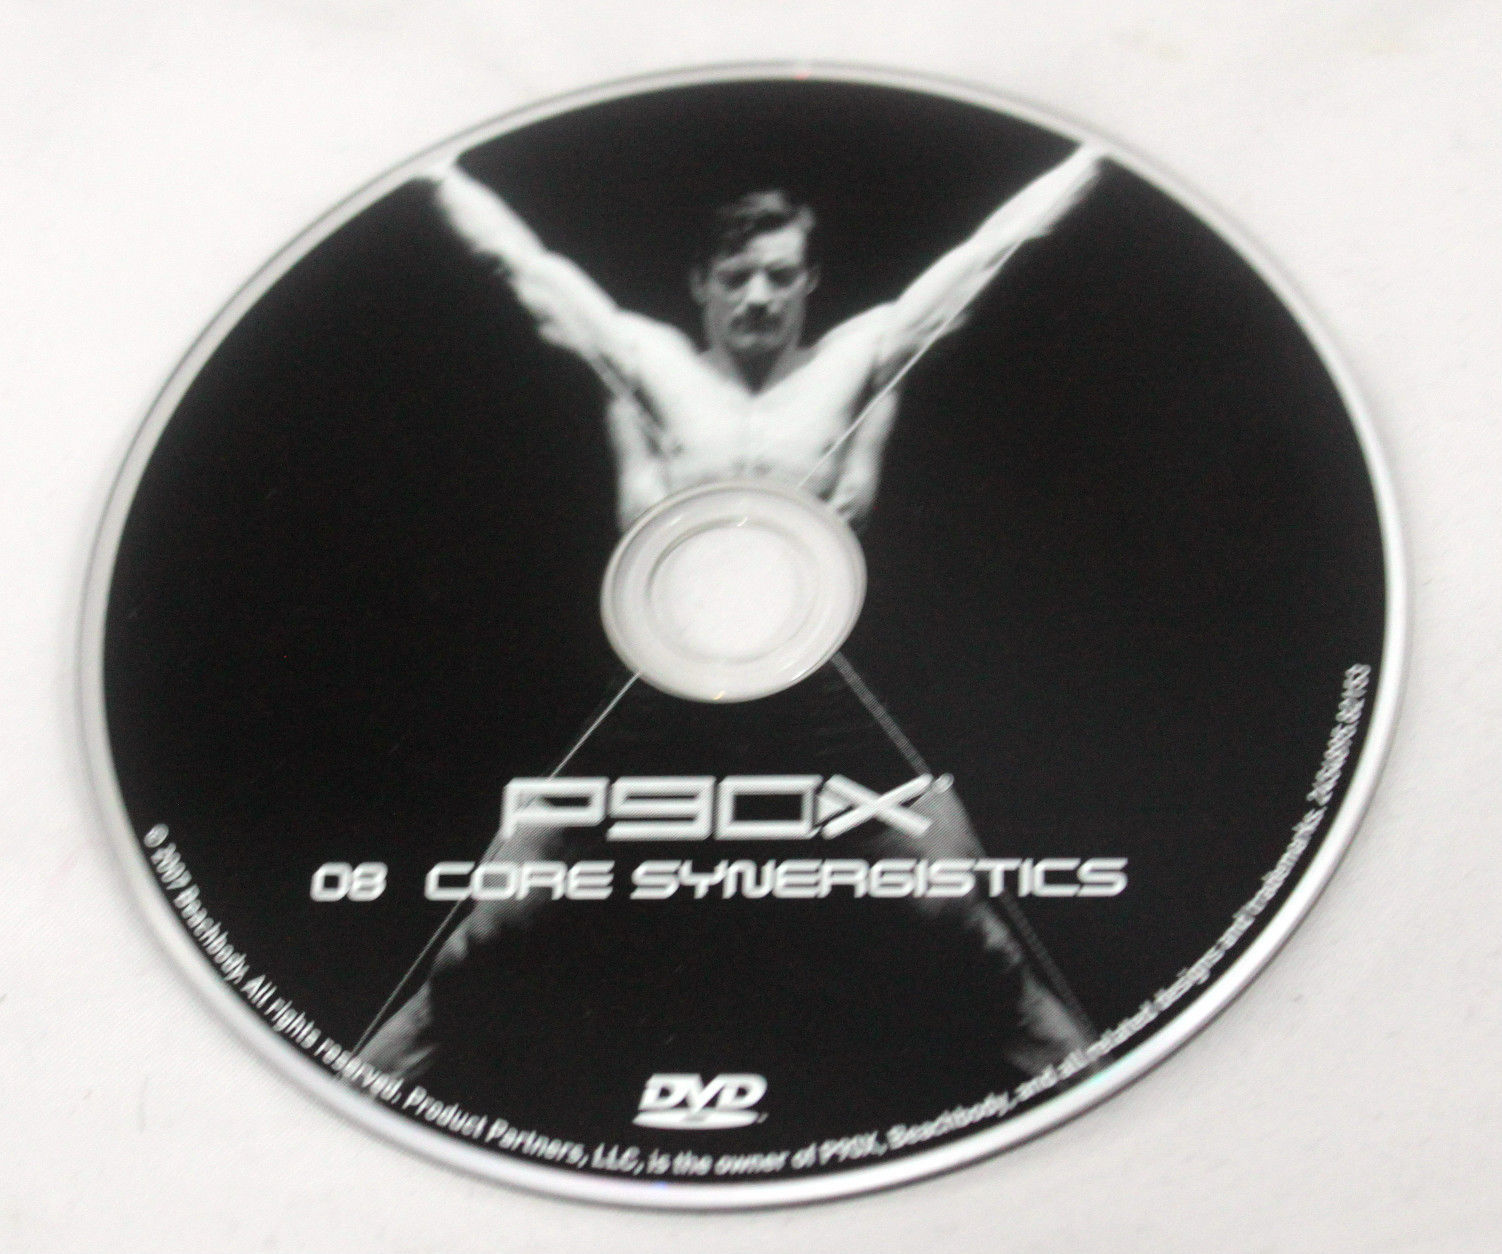 P90x Replacement Dvd Disc 8 Core Synergistics Beachbody